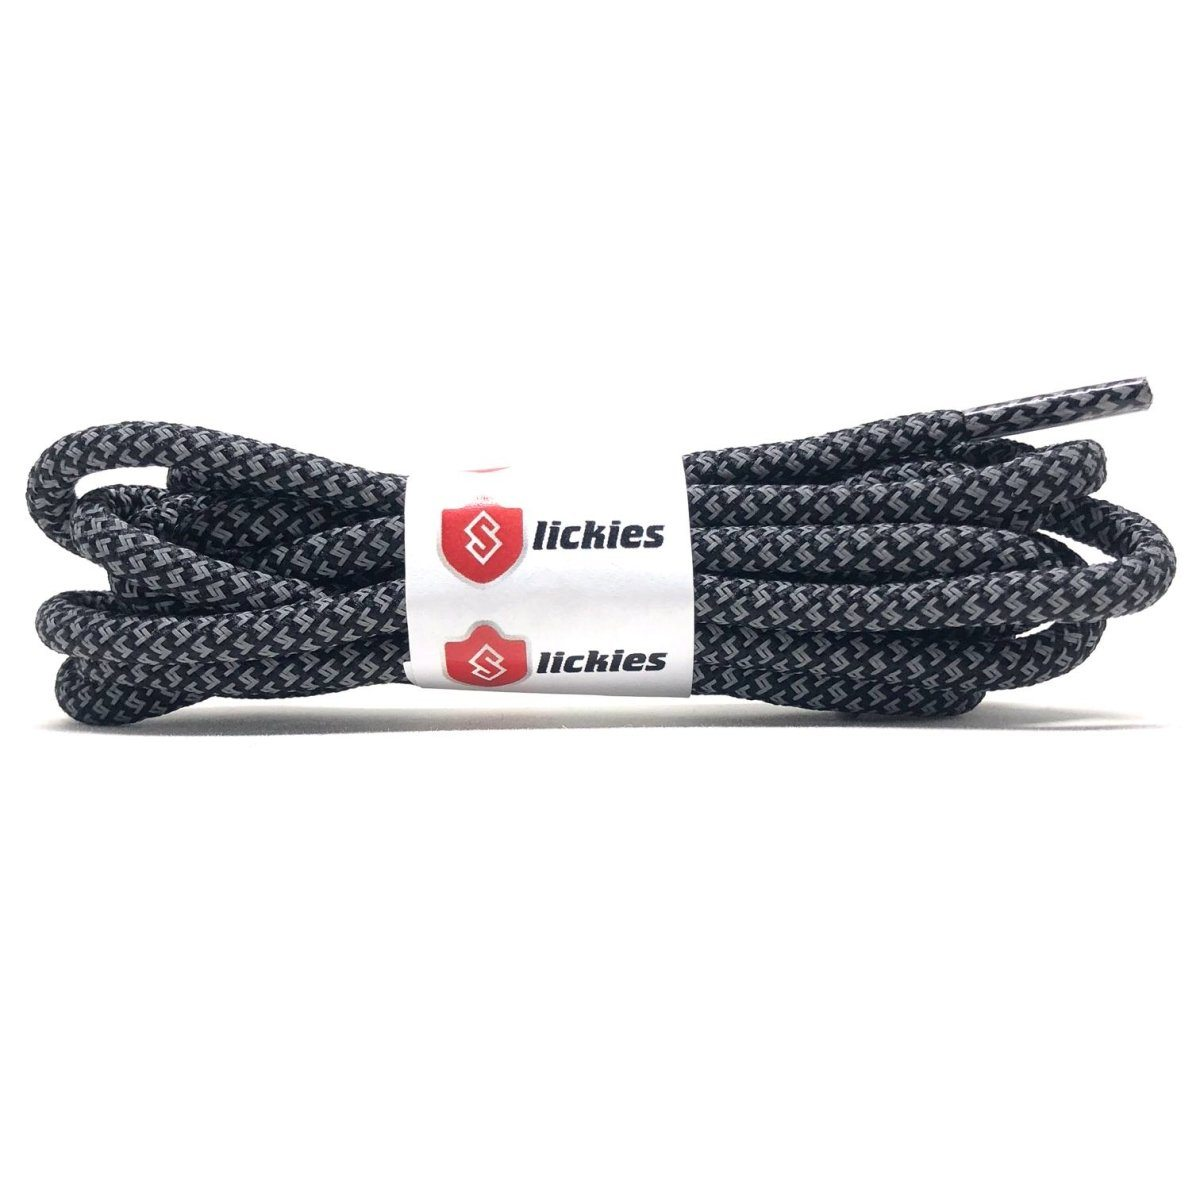 3M Rope - 3M Reflective Rope Laces - Static Black